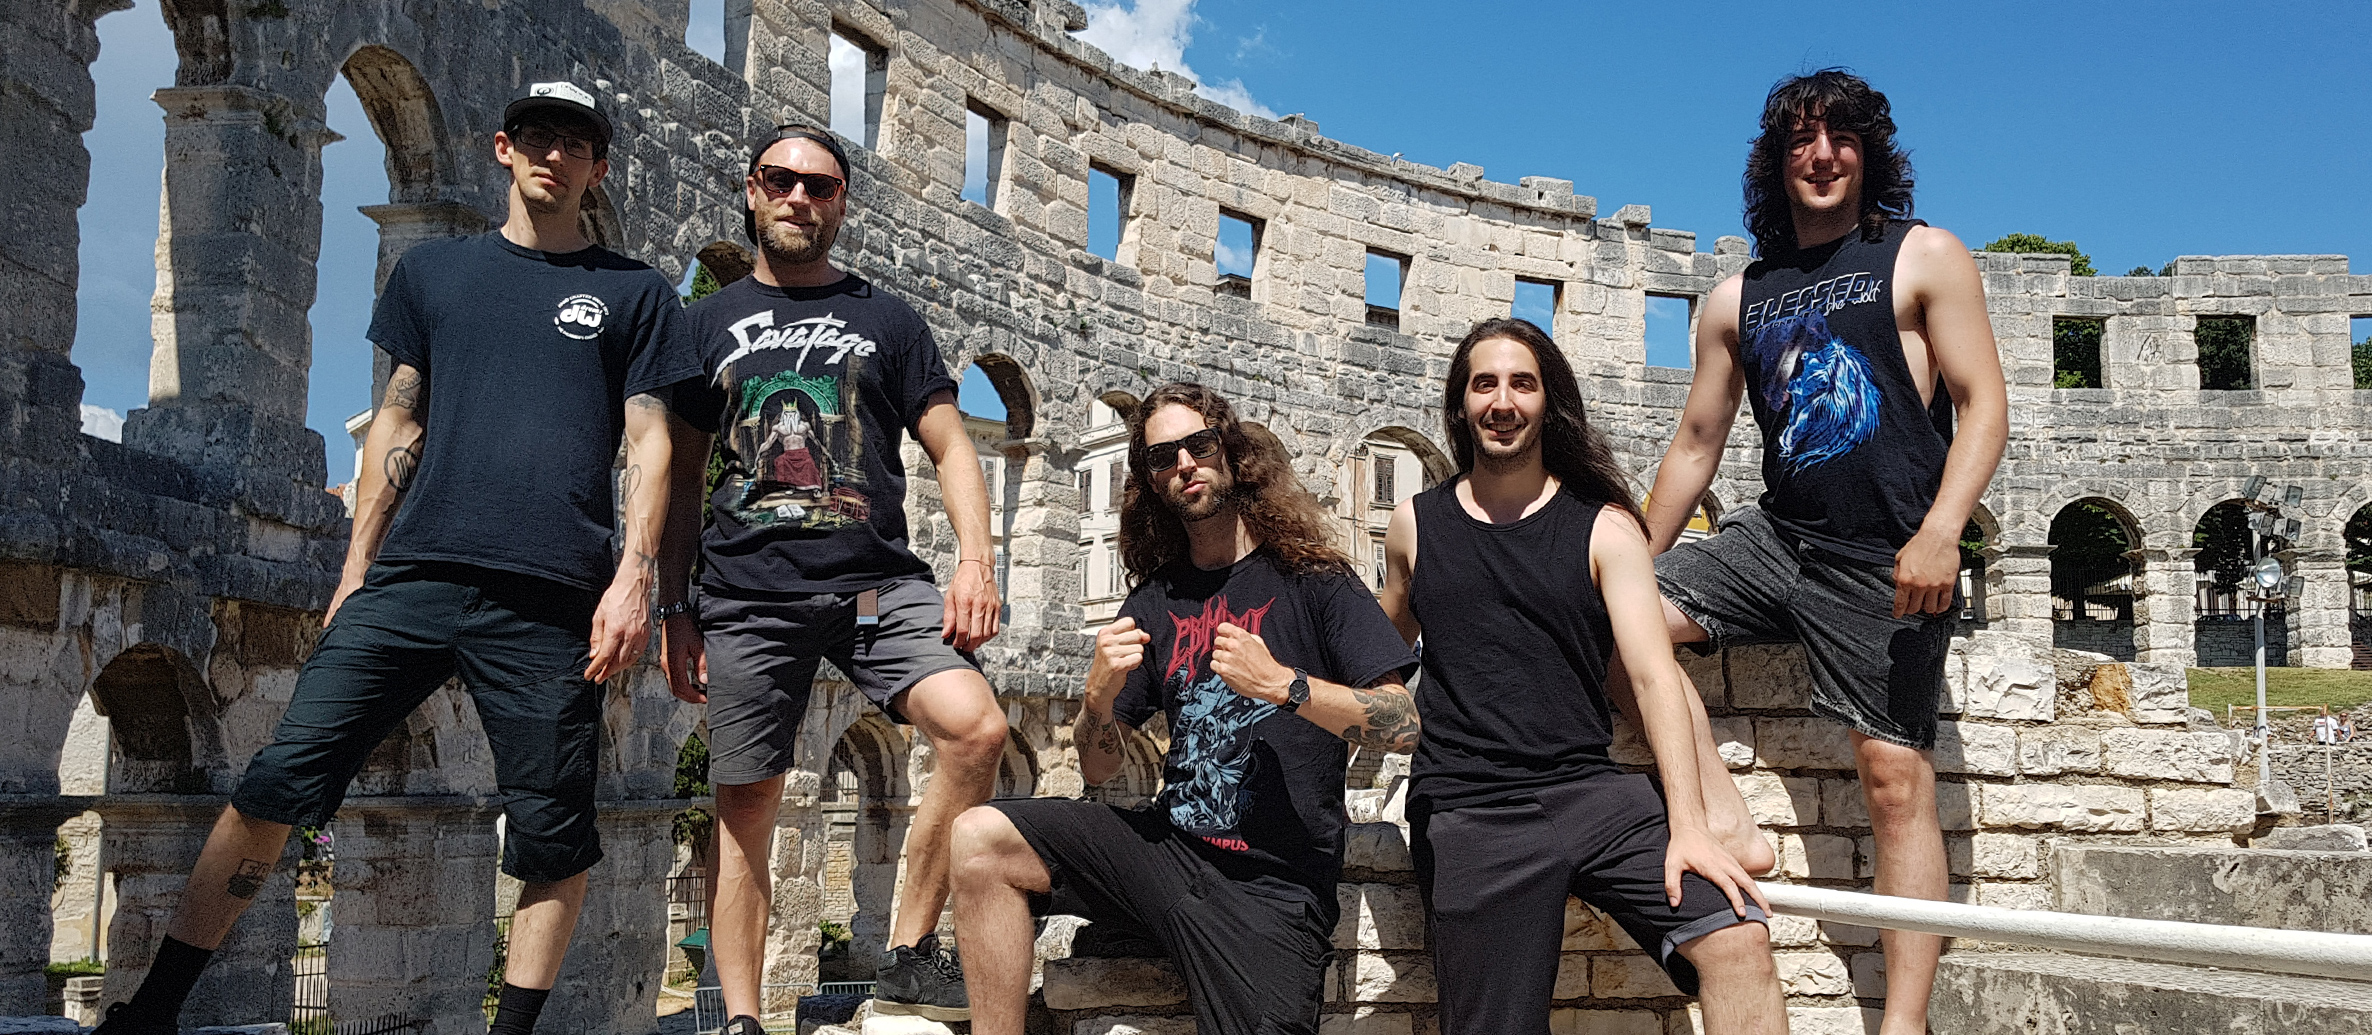 CALLING FOR YOU – Primitai's guitarist Serj discusses some of the band's summer highlights